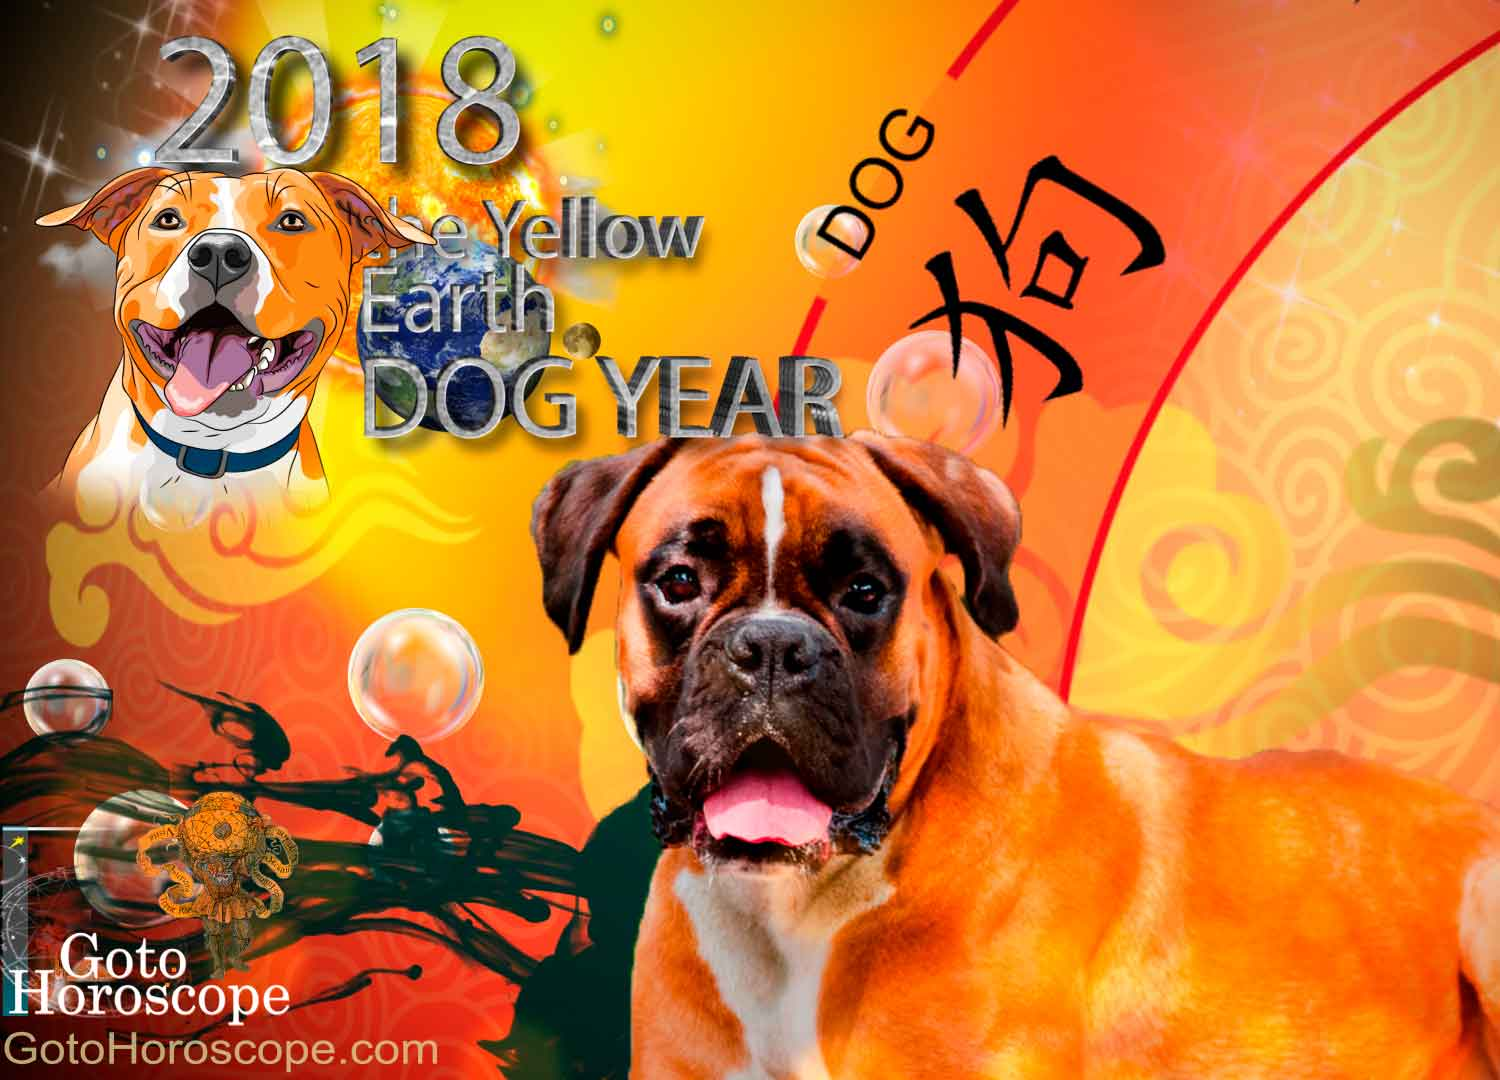 Dog 2018 Horoscope for the Yellow Earth Dog Year